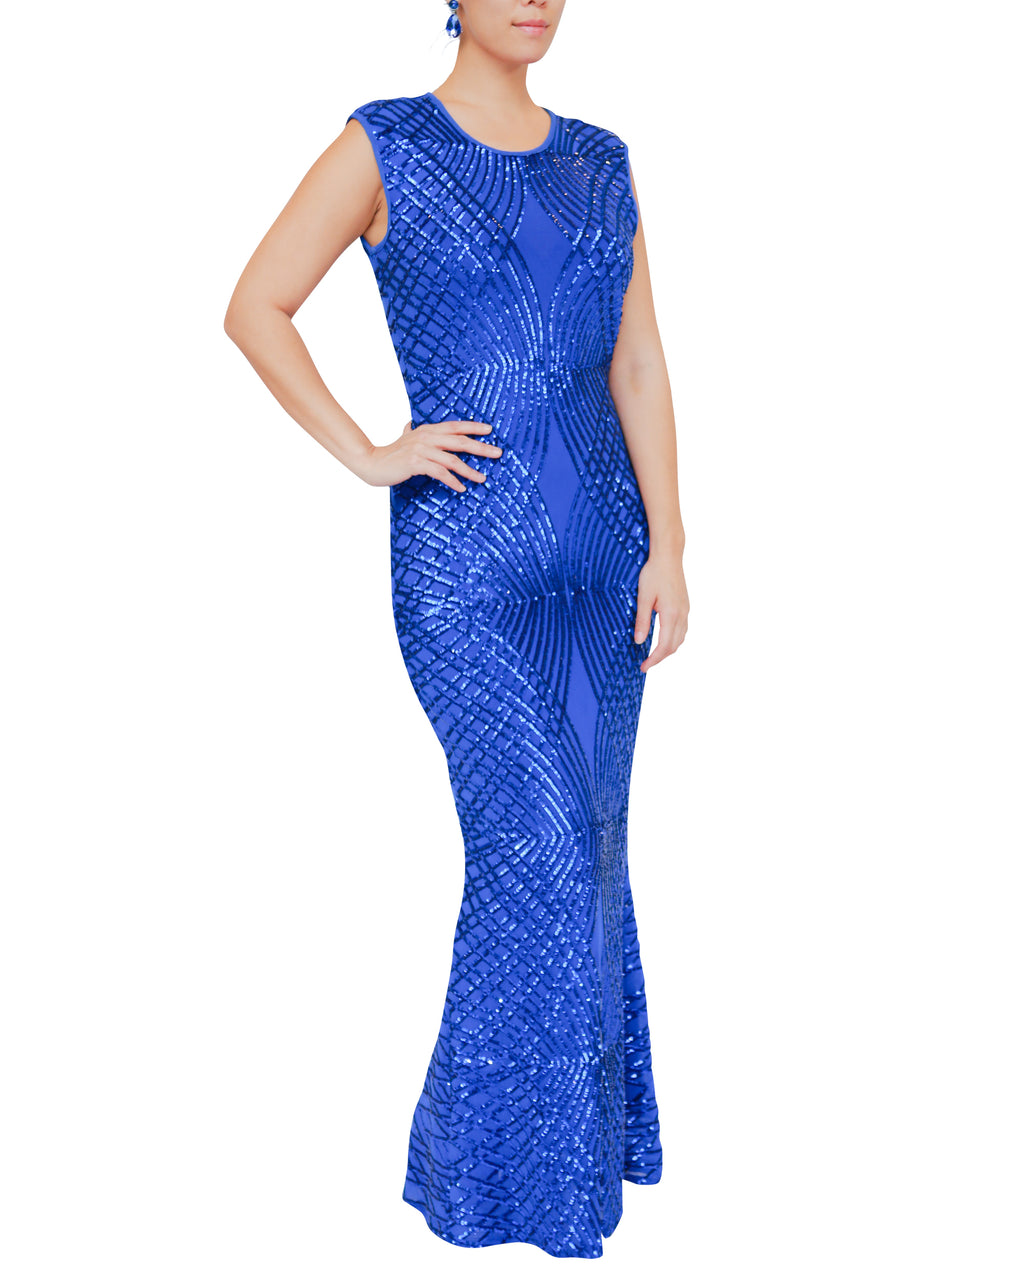 Stretch Sleeveless Blue Sequin Gown